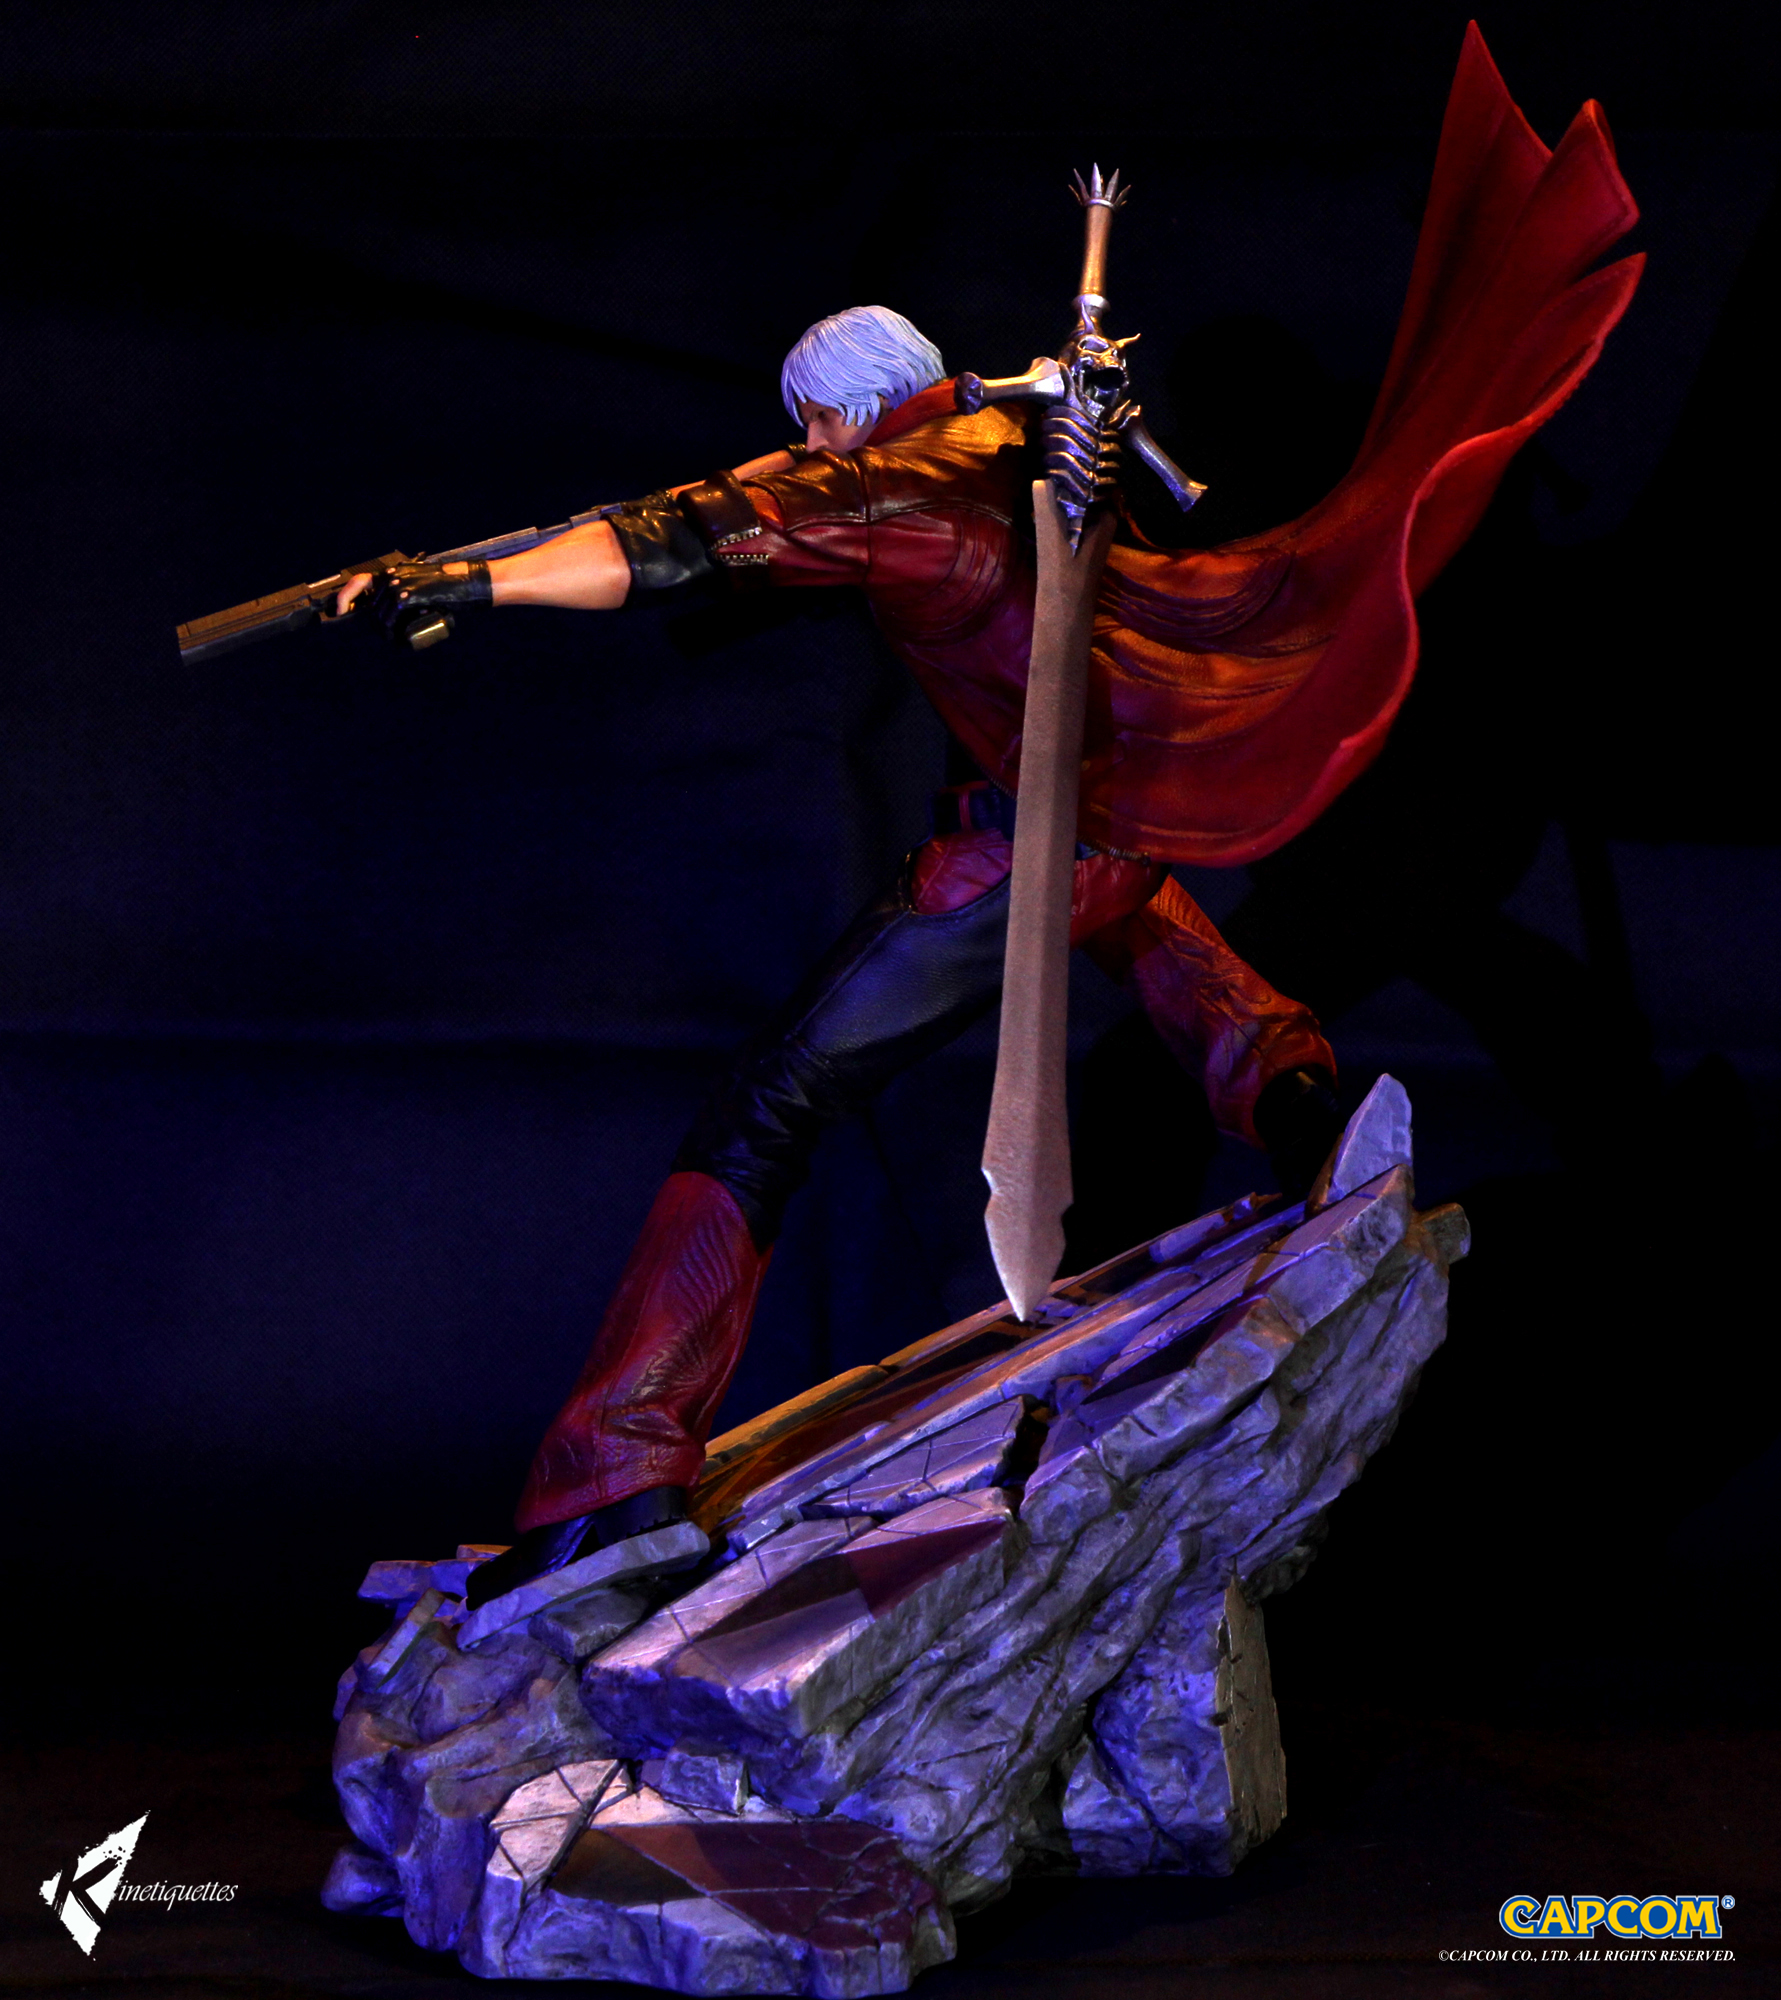 Photos And Pre-Orders Up For Devil May Cry